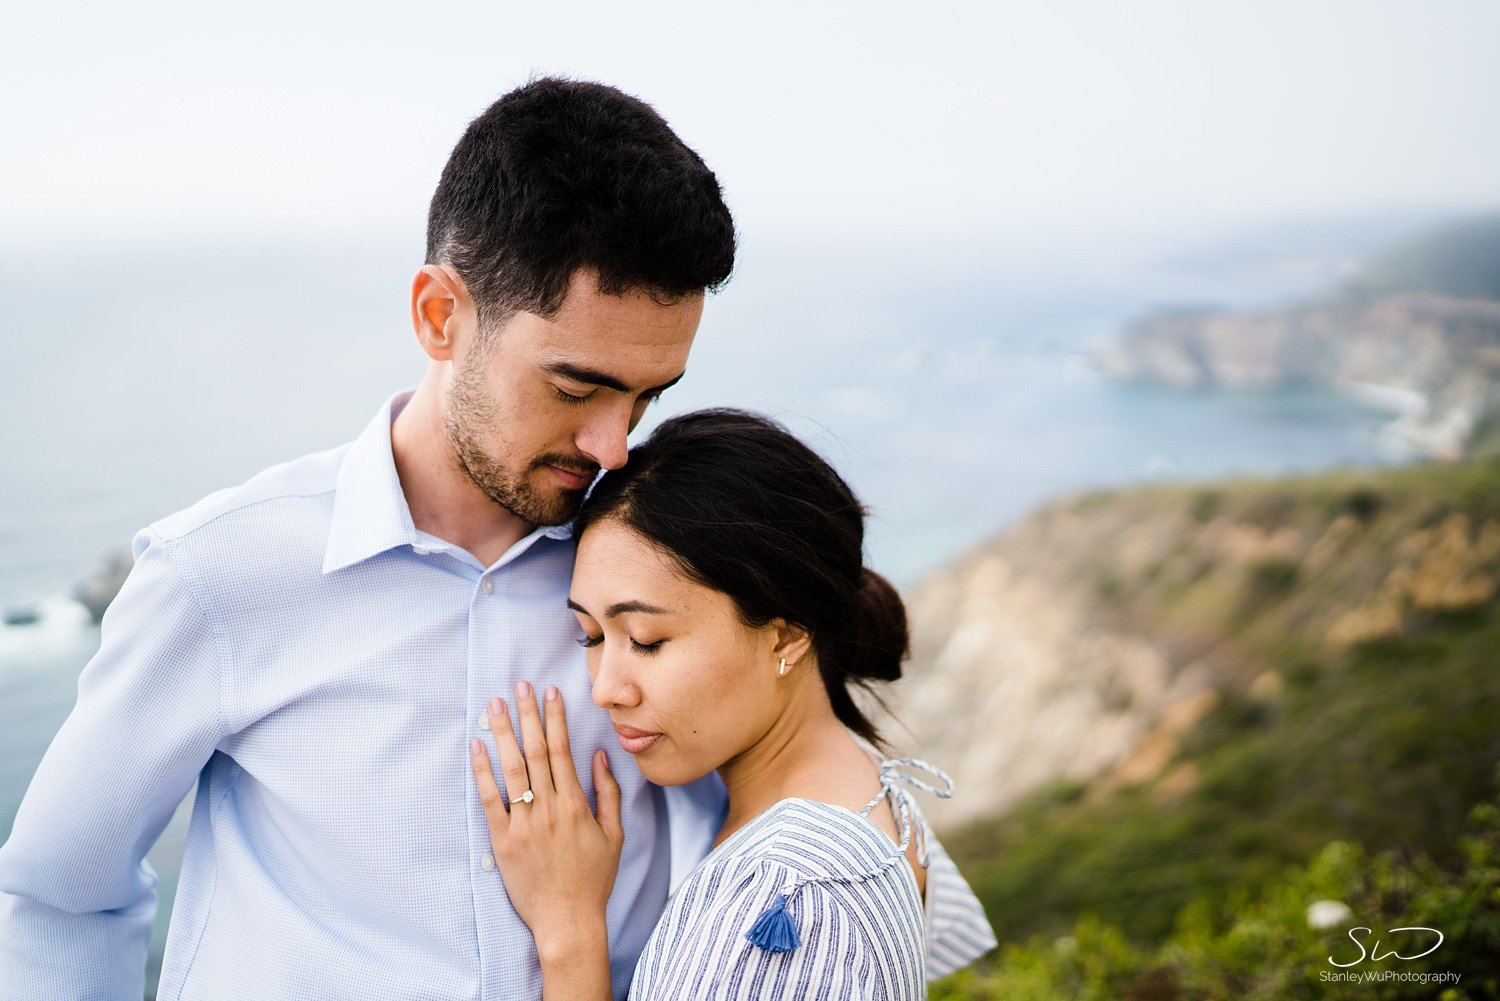 Sarah + Cameron – Big Sur Engagement